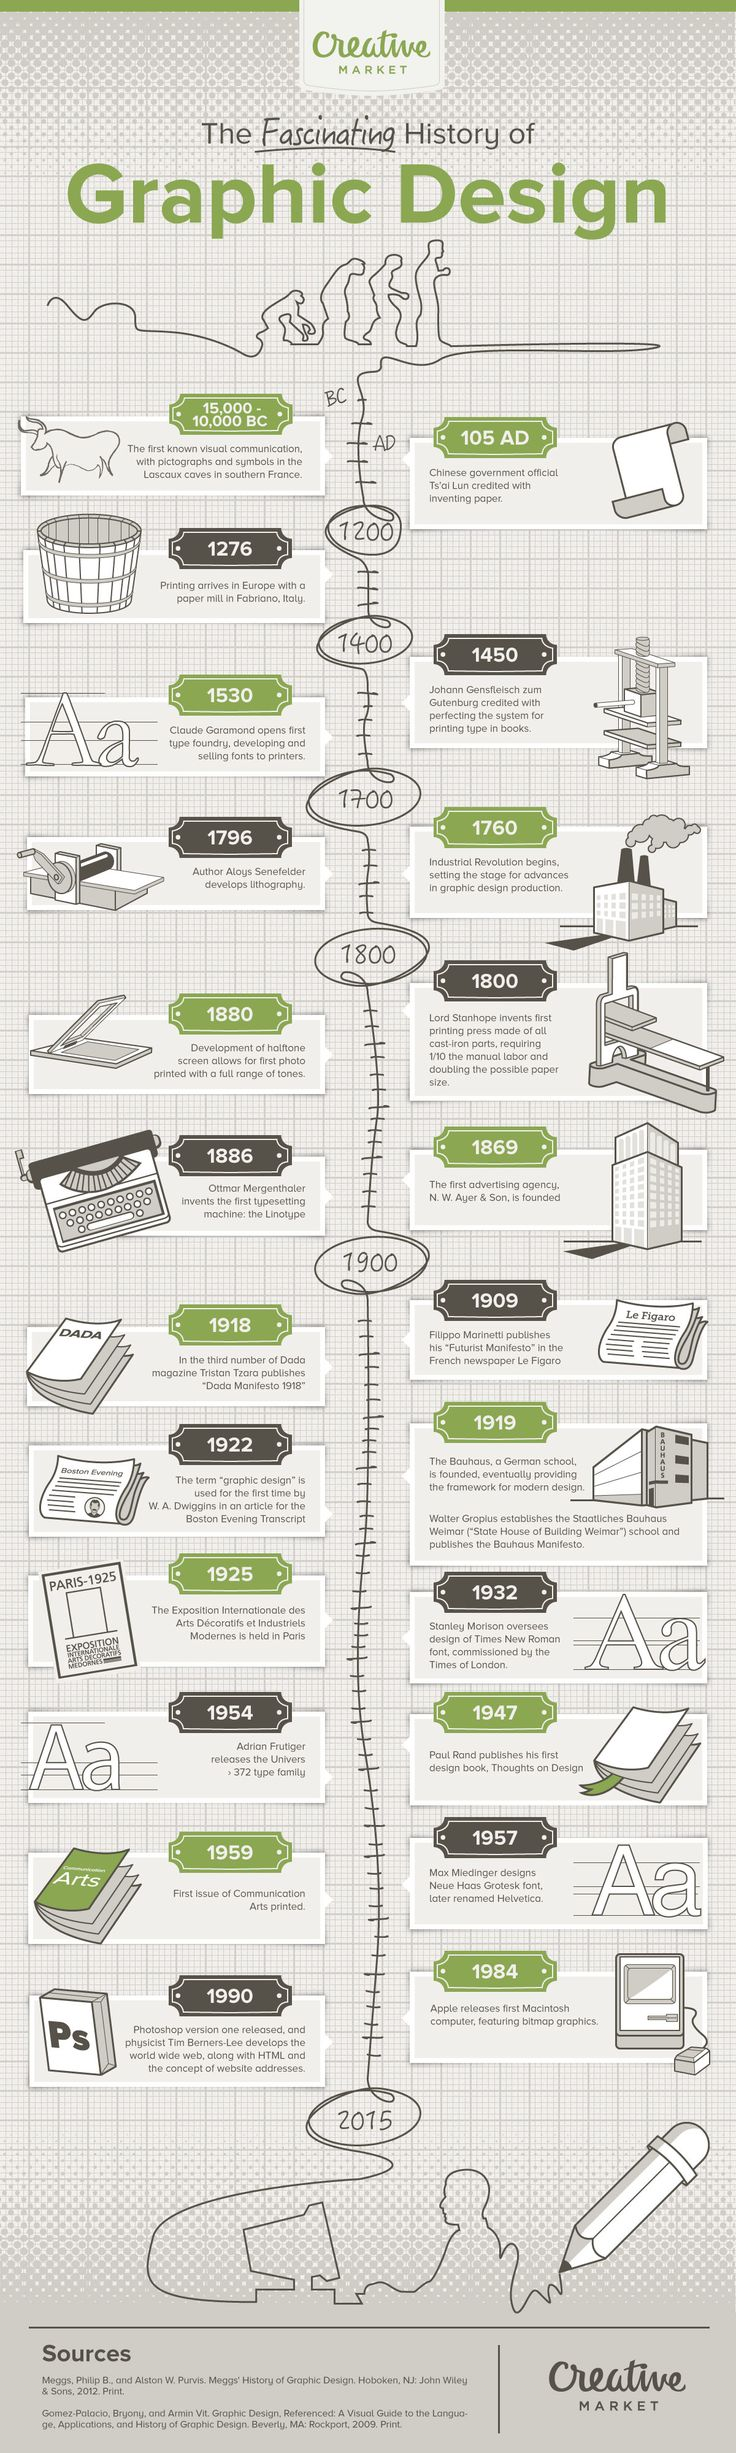 On the Creative Market Blog - Infographic: The History of Graphic Design